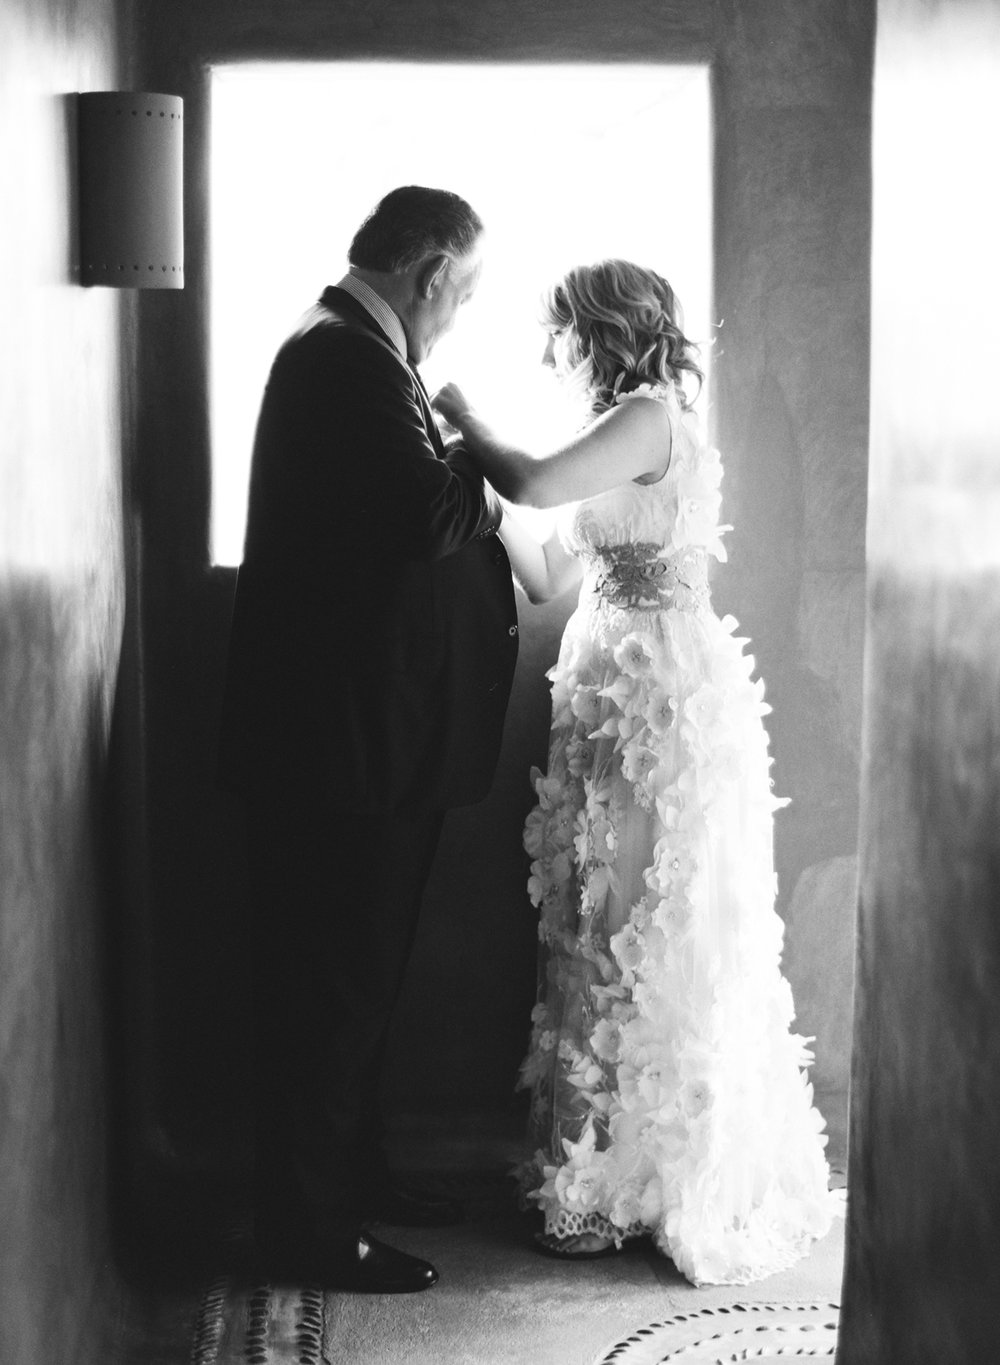 carreyes_wedding_photographer_013.jpg